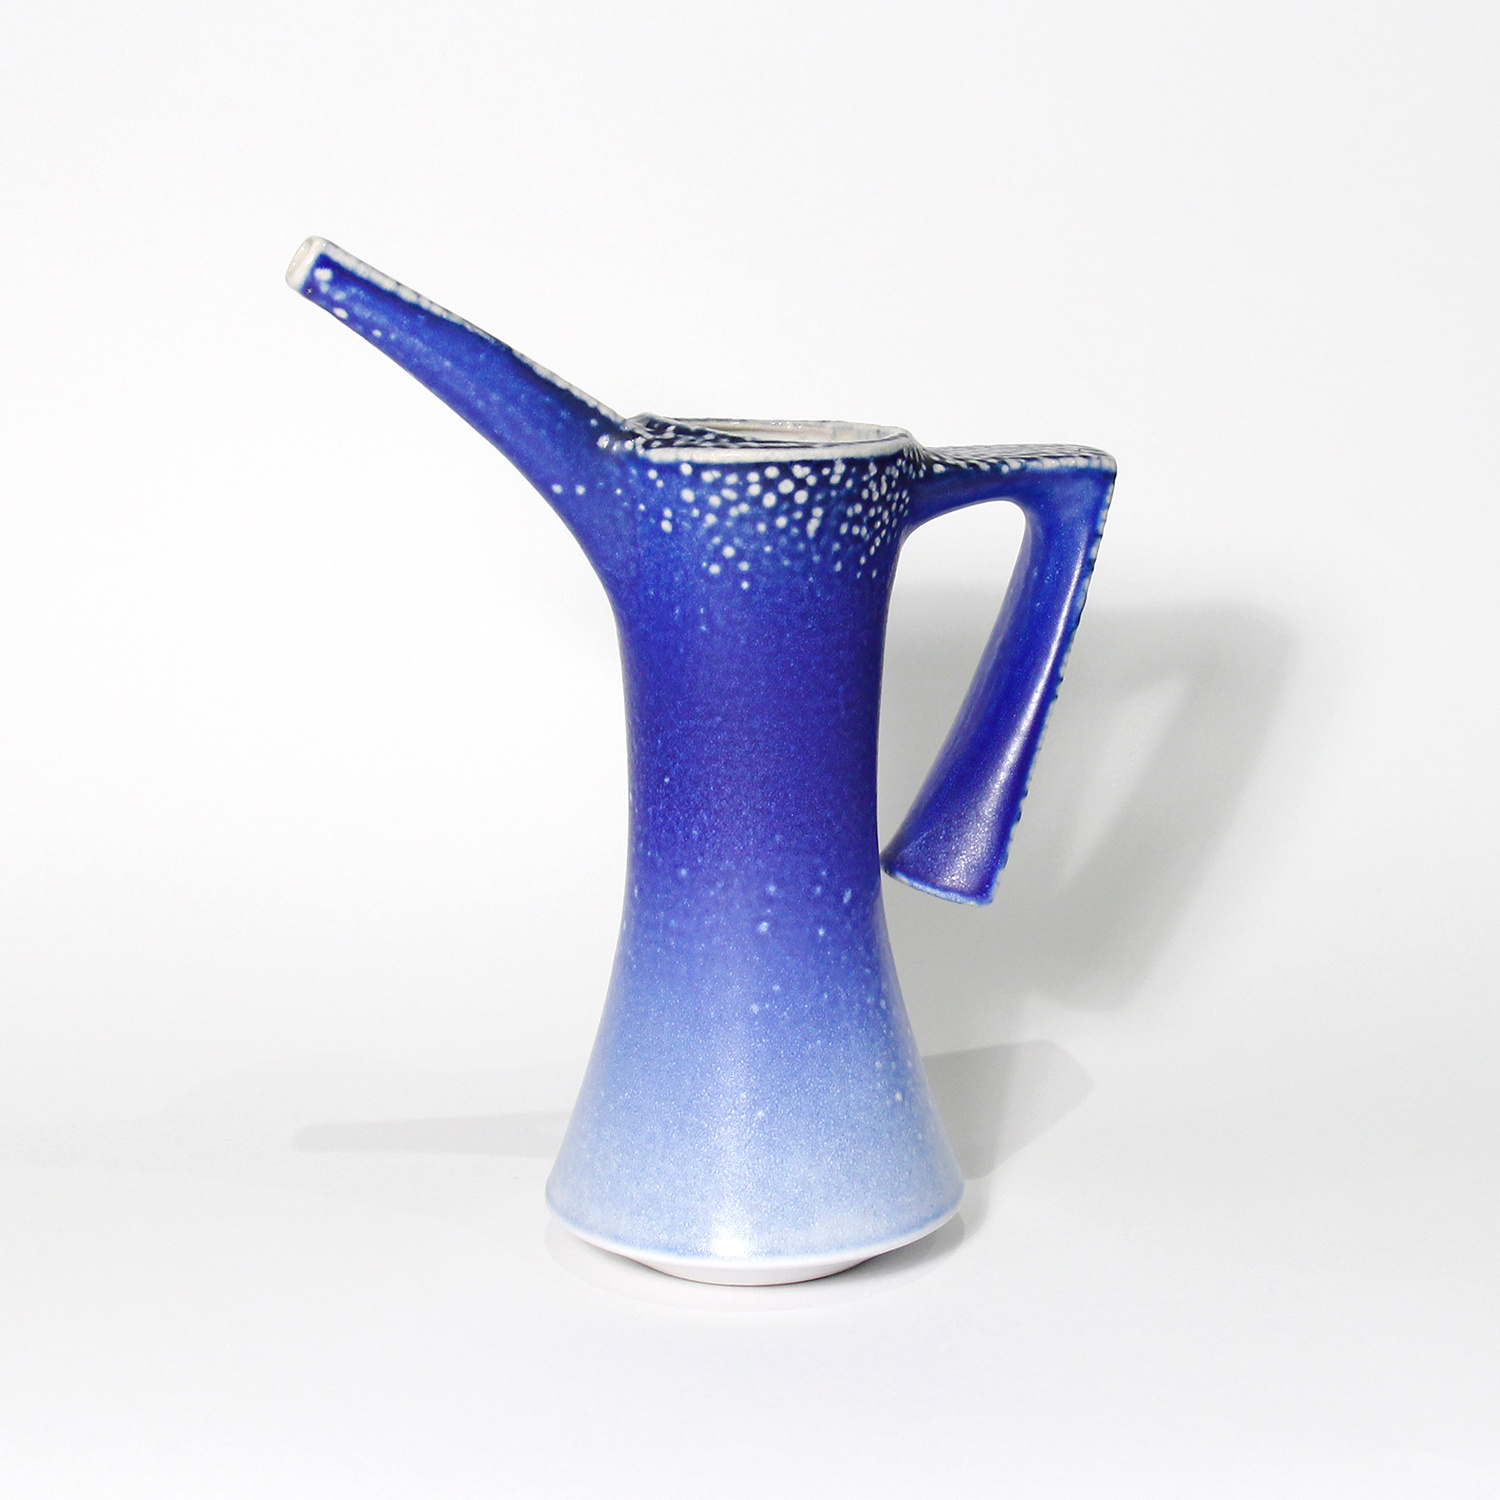 Open Handle Jug by Jeremy Nichols